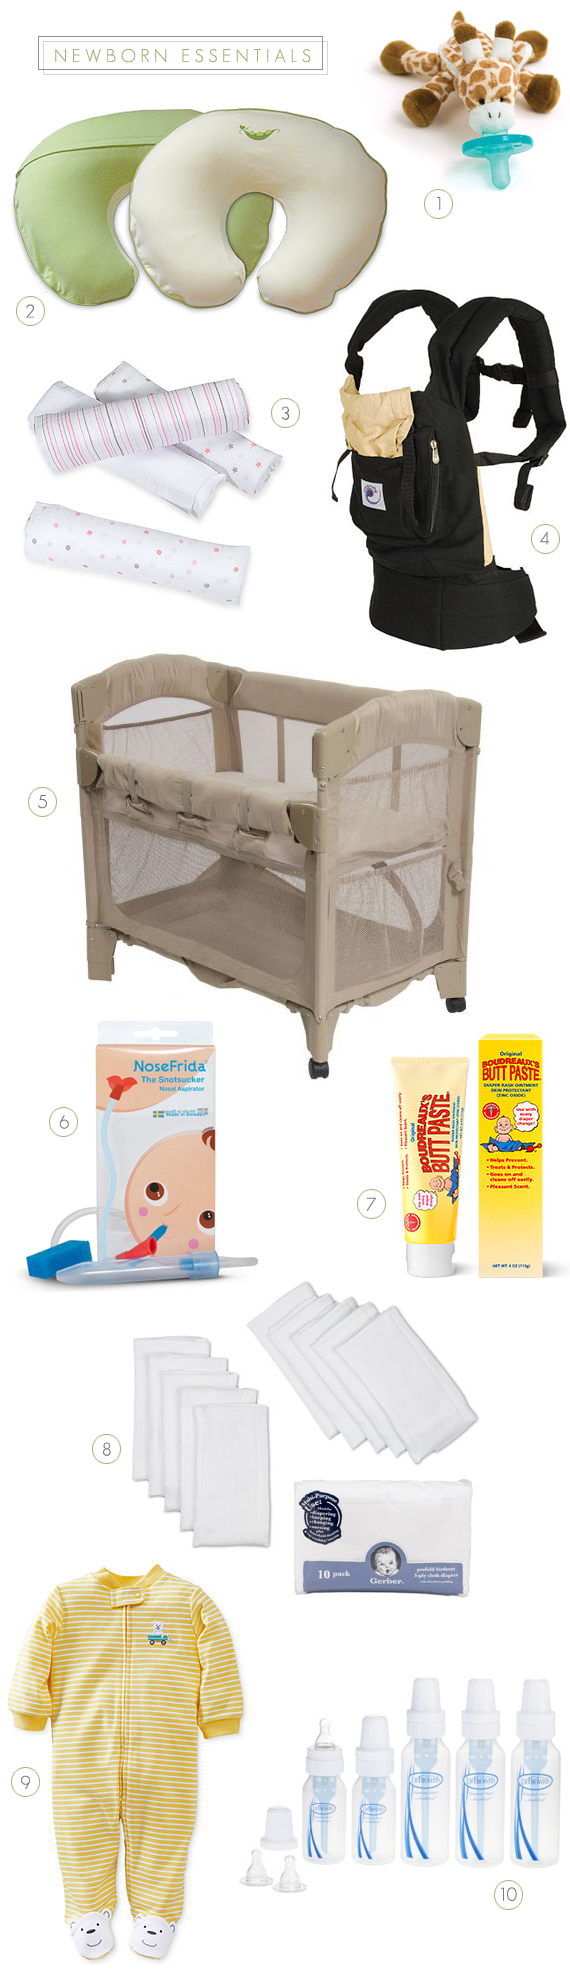 10 Essential Newborn Products